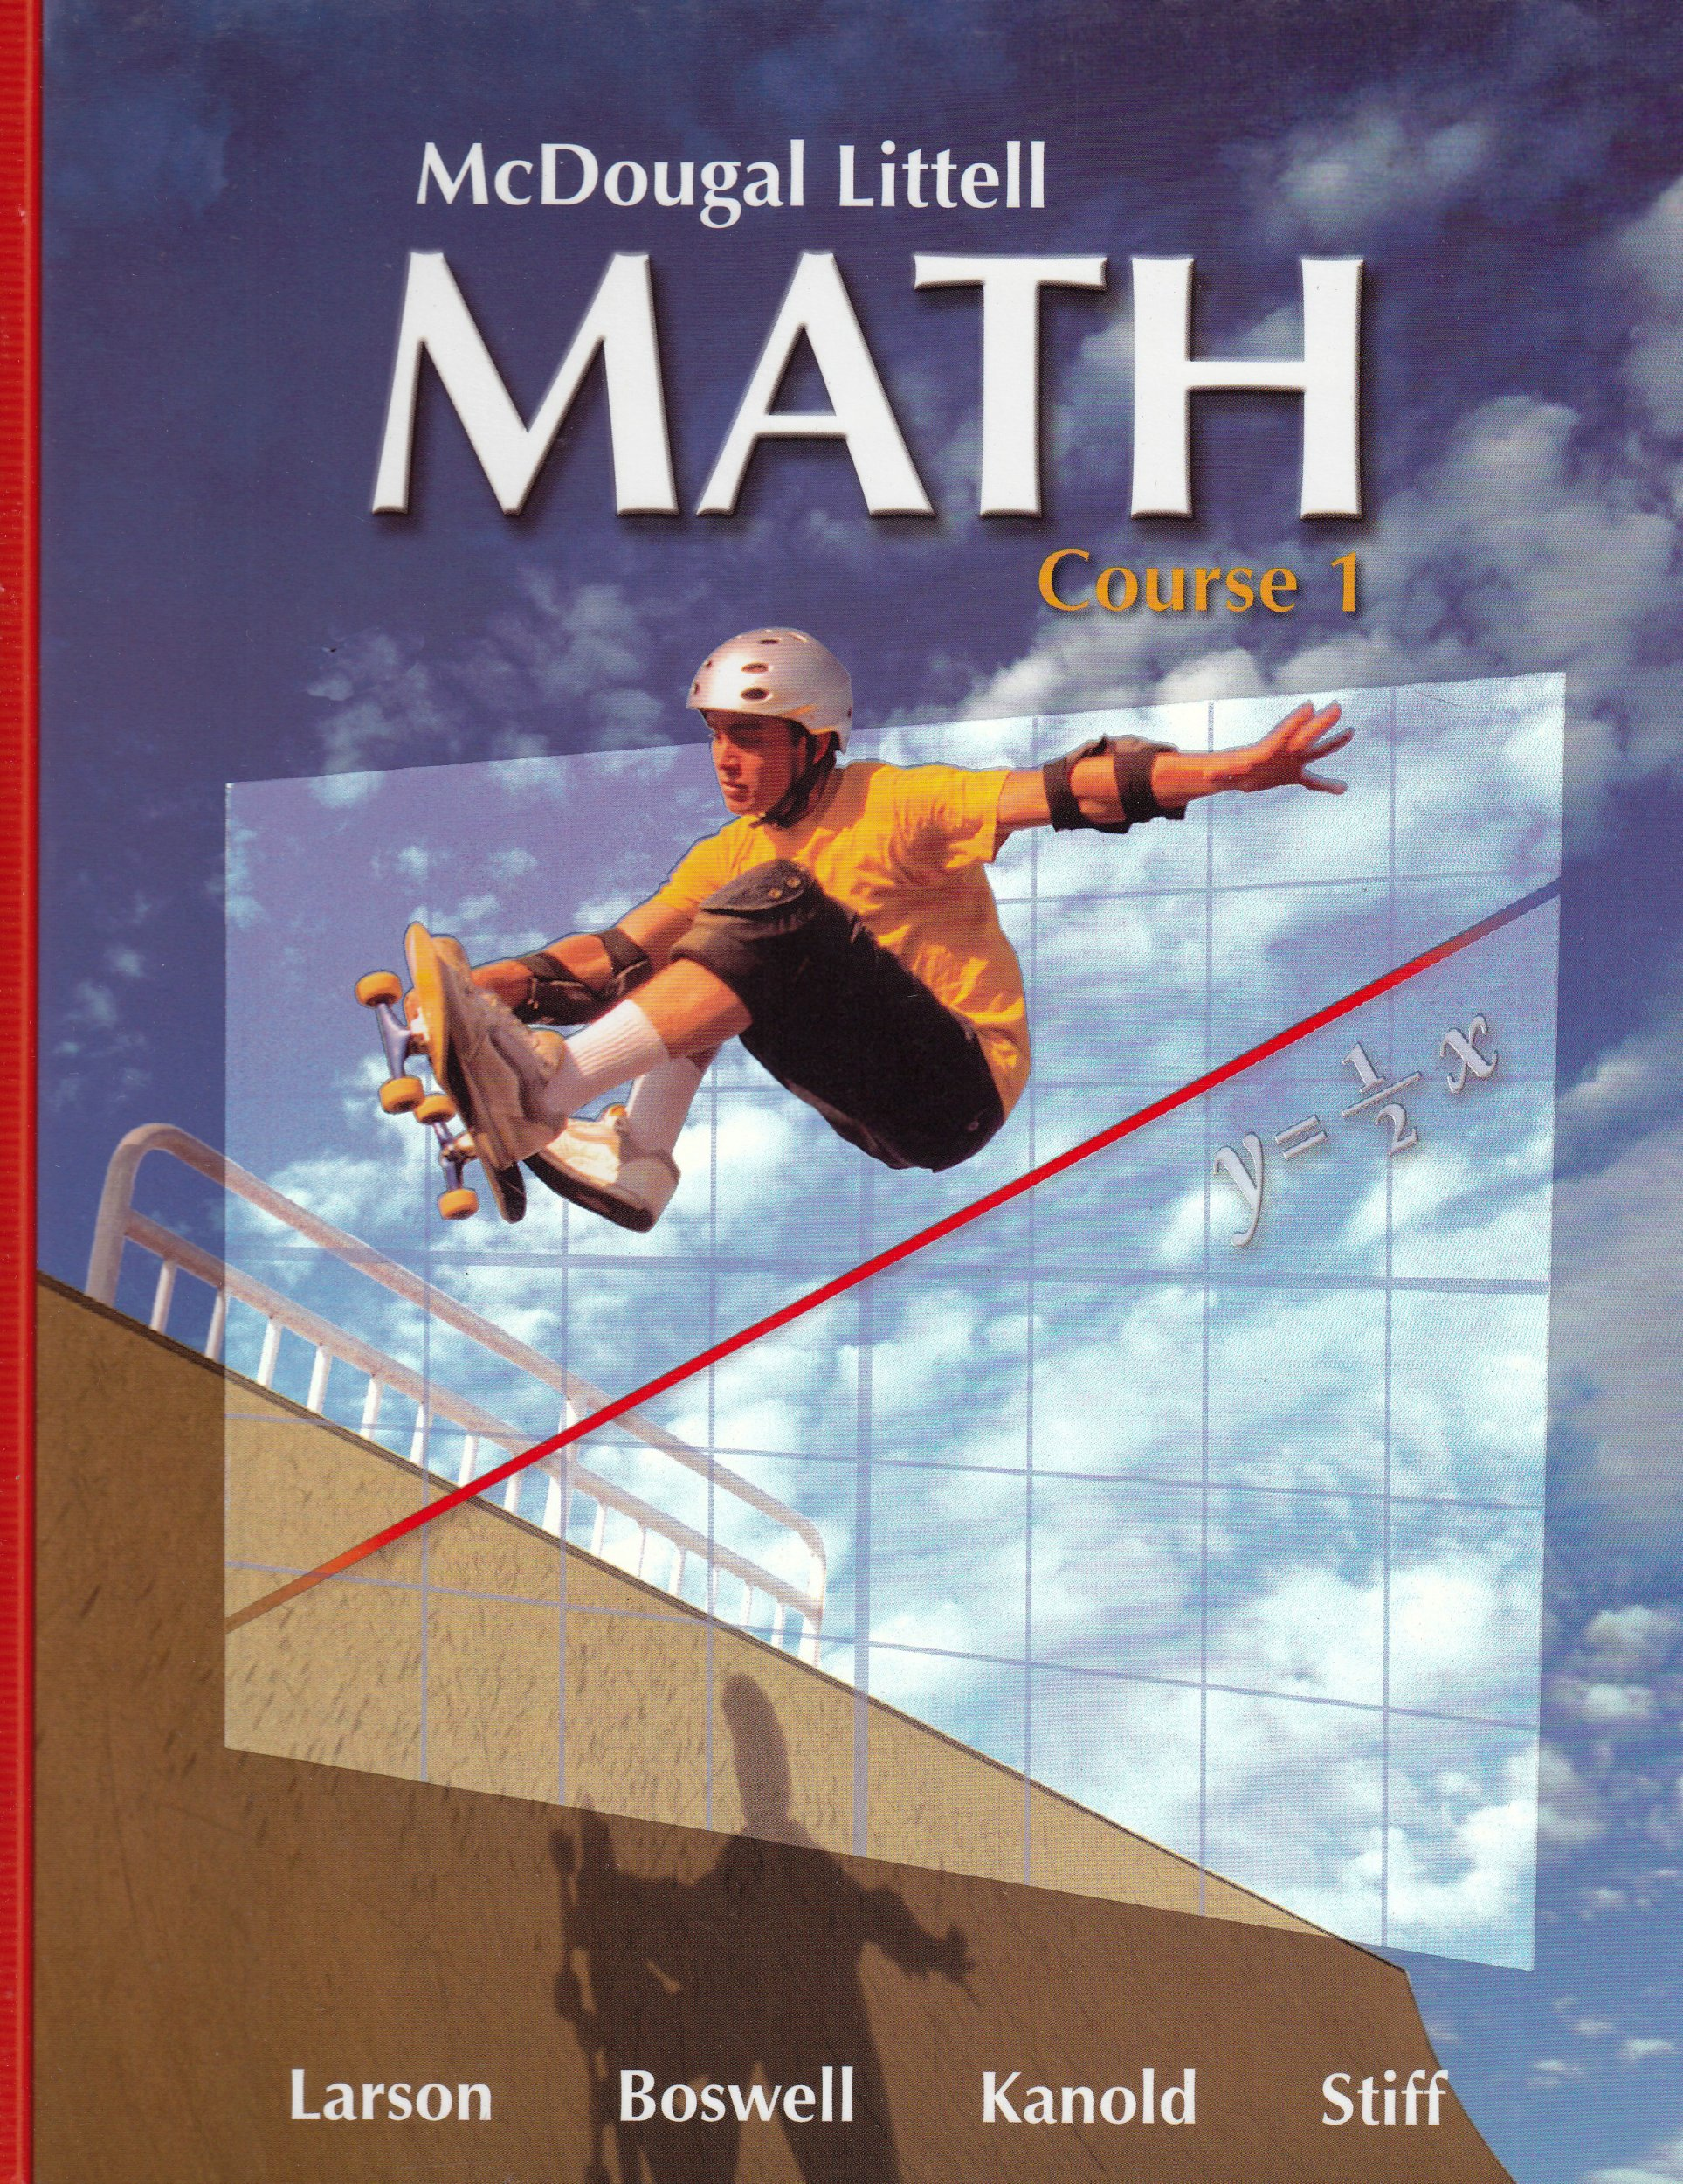 Mcdougal littell math course 1 student edition 2007 ron larson mcdougal littell math course 1 student edition 2007 ron larson laurie boswell timothy kanold lee stiff 9780618638239 amazon books fandeluxe Images